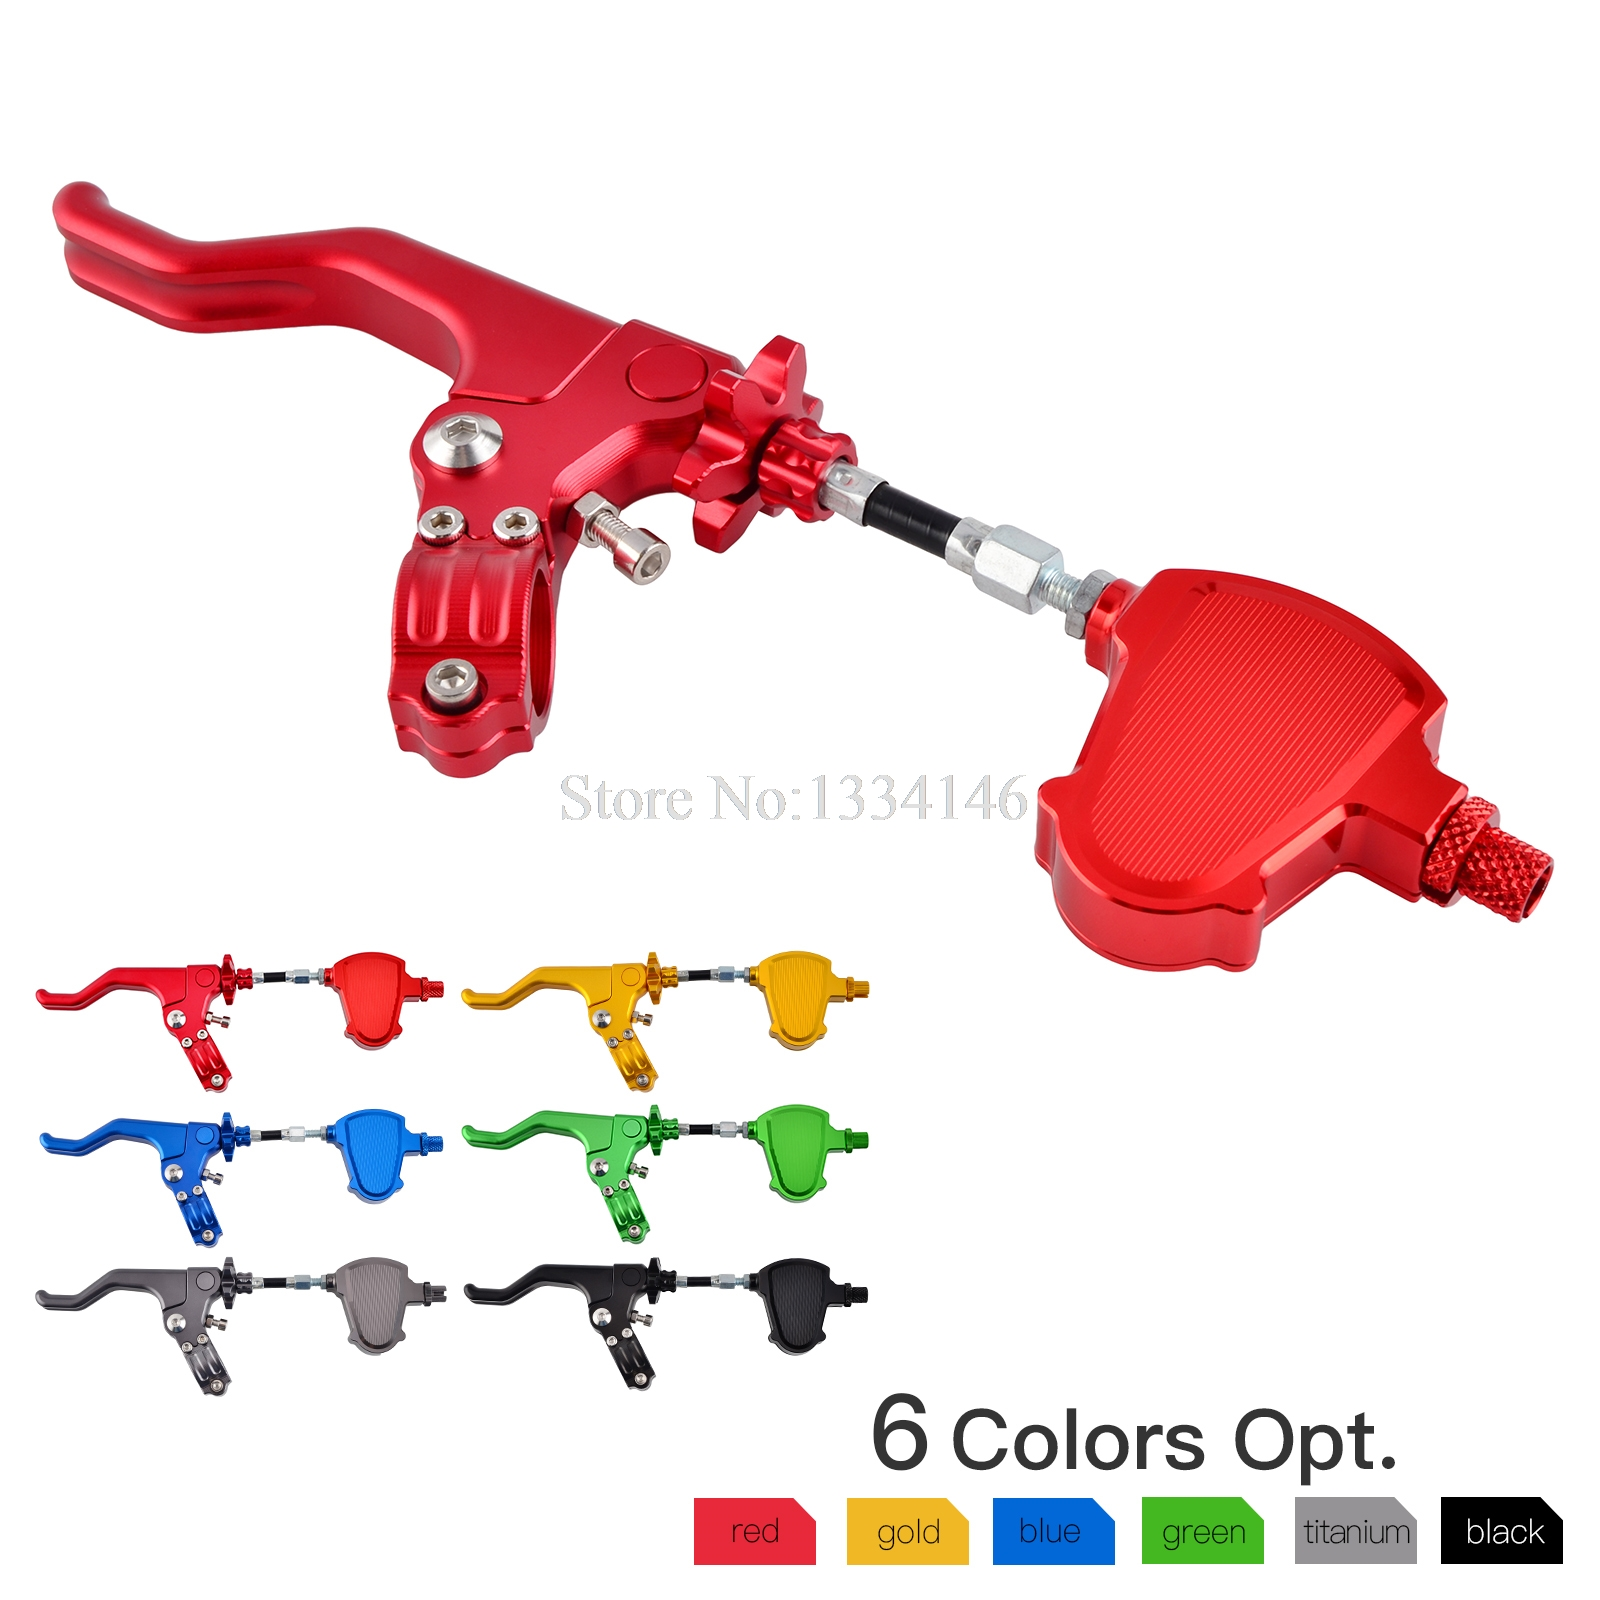 NICECNC Short Stunt Clutch Lever Assembly & Stunt Clutch Easy Pull Cable System For Honda CRF250R CRF450R CRF250L CRF250M 2017